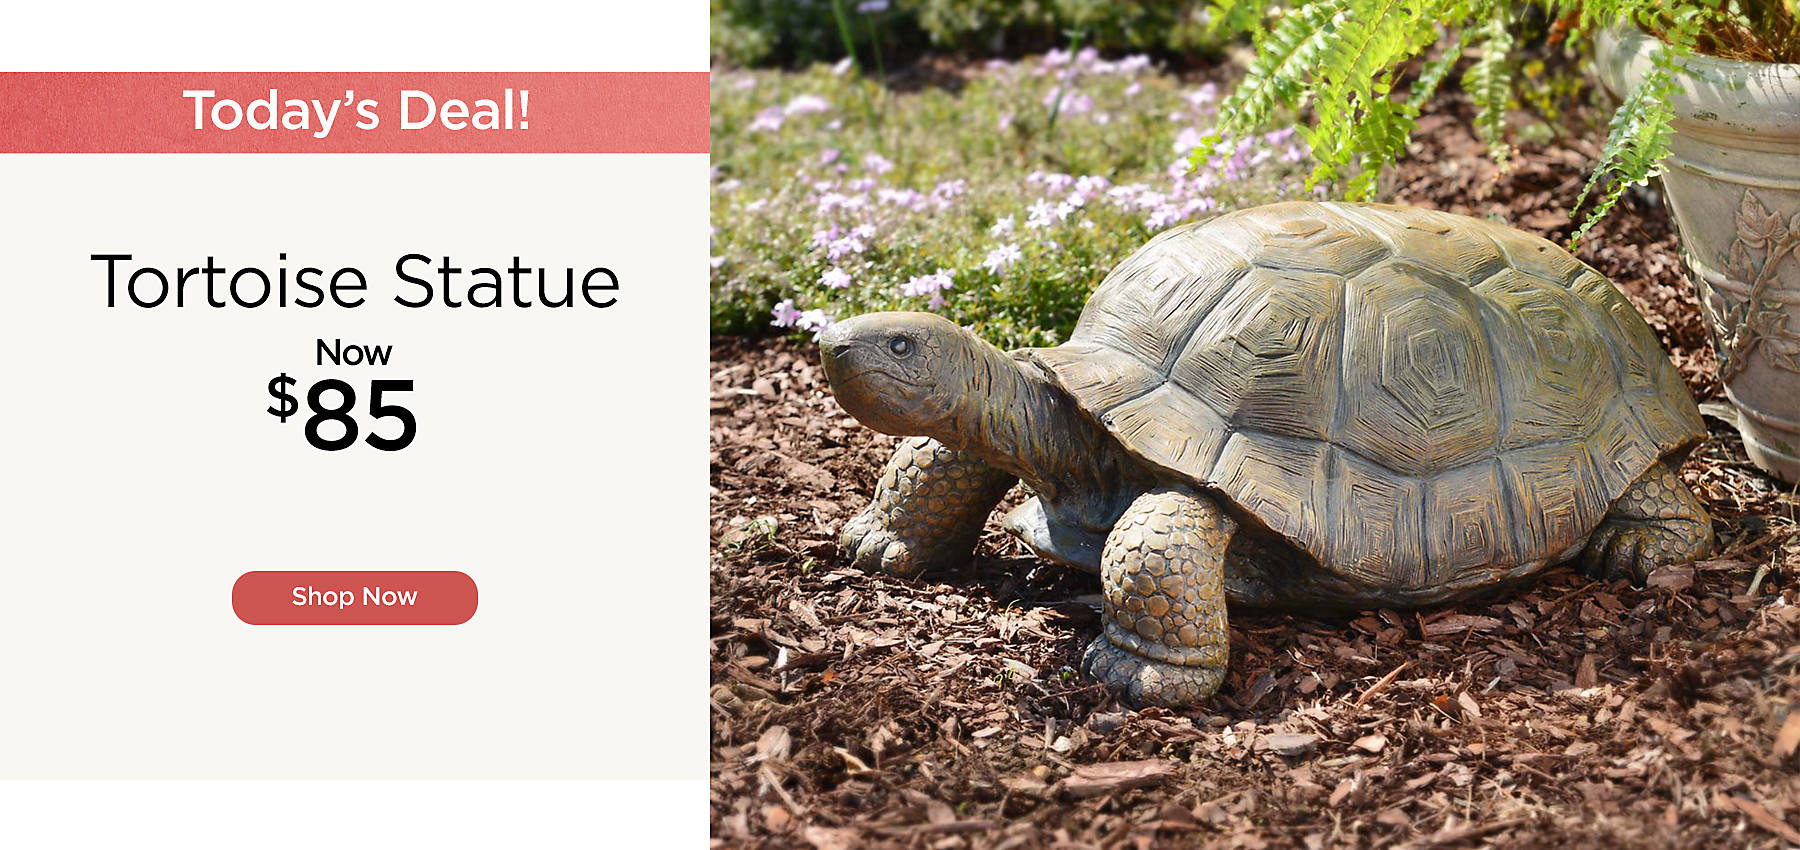 One Day Only - Tortoise Statue Now $85 - Shop Now